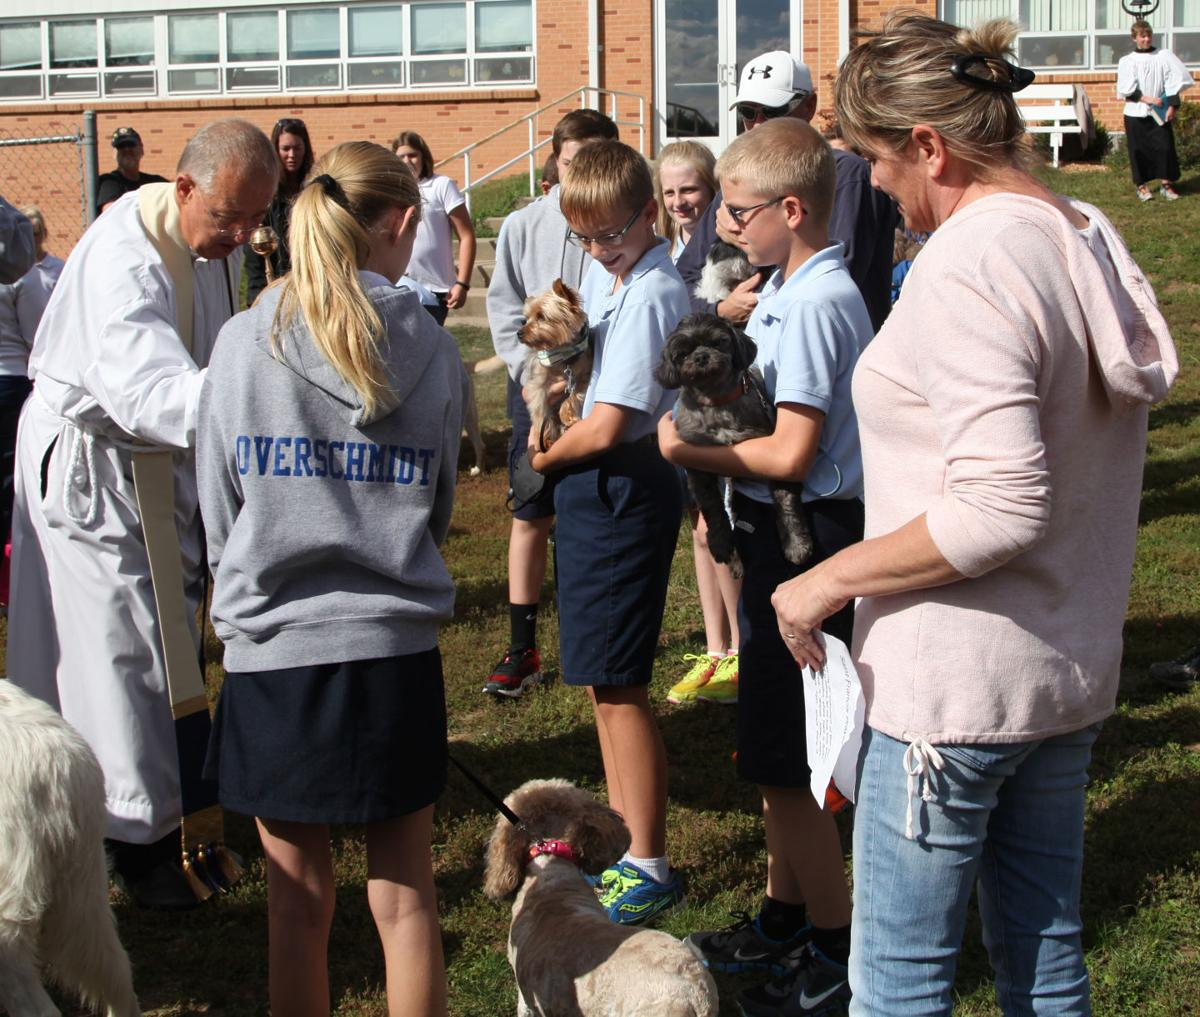 024 St Gertrude School Blessing of the Pets 2014.jpg